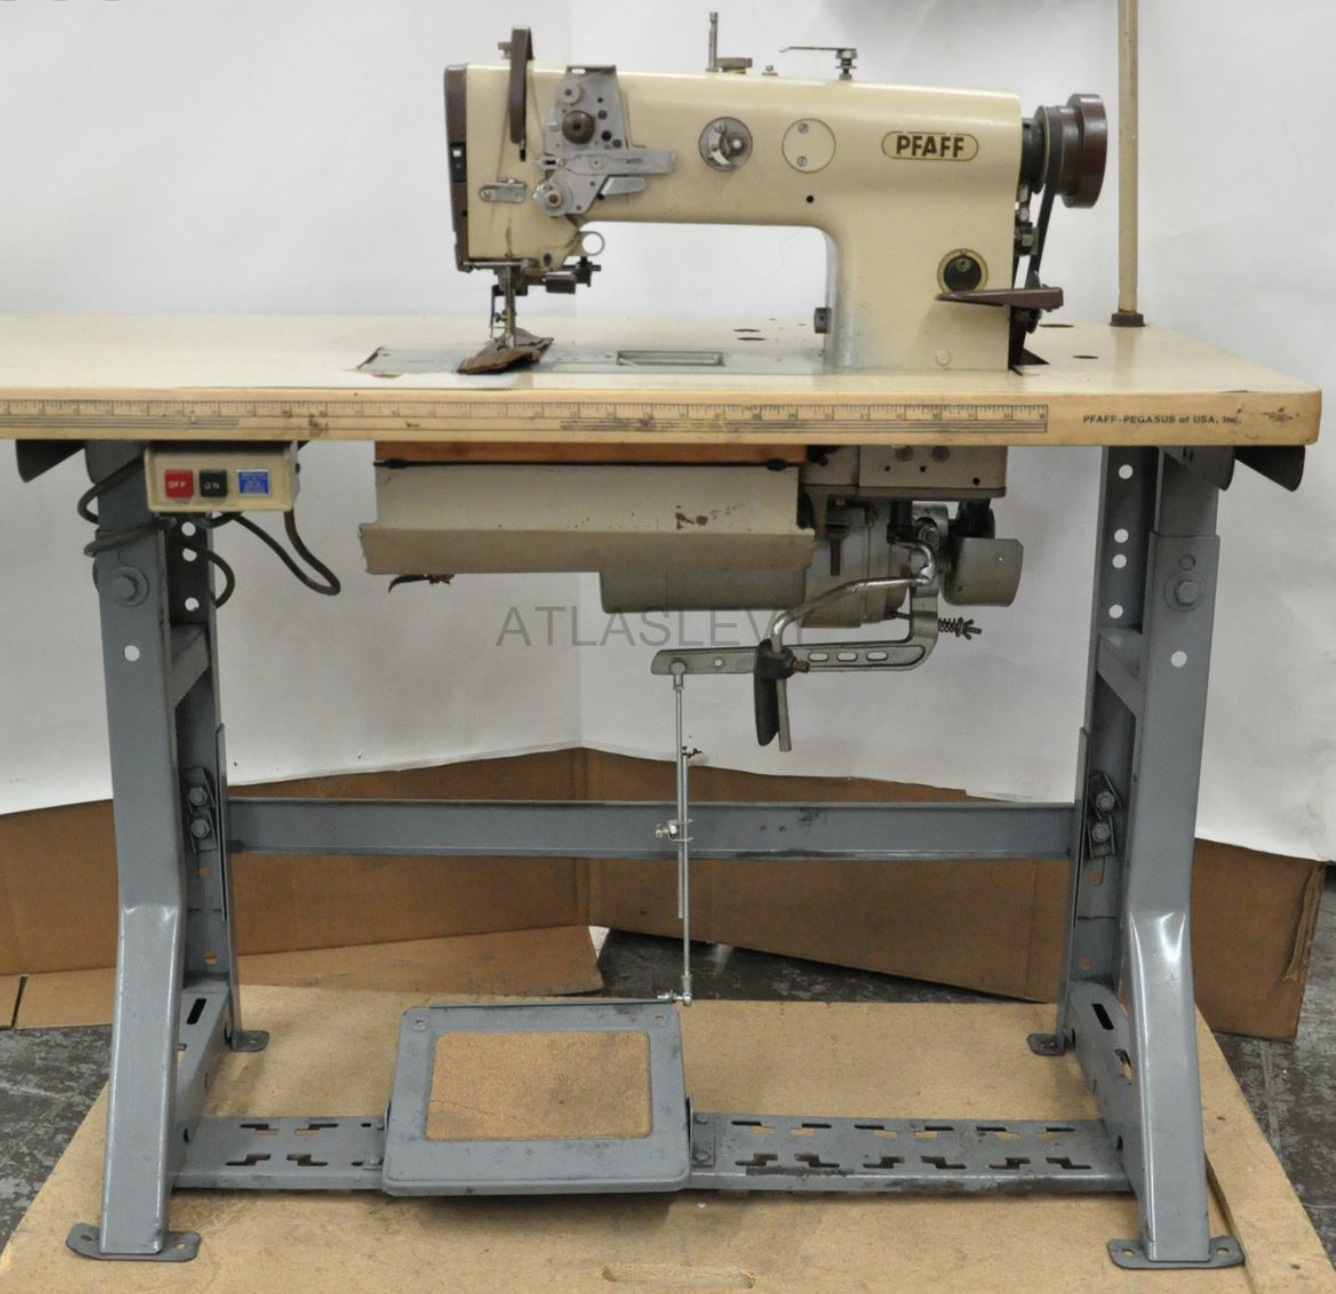 Hot rods upholsterers hows the pfaff 1445 sewing machine the h a m b - Reparation machine a coudre pfaff ...